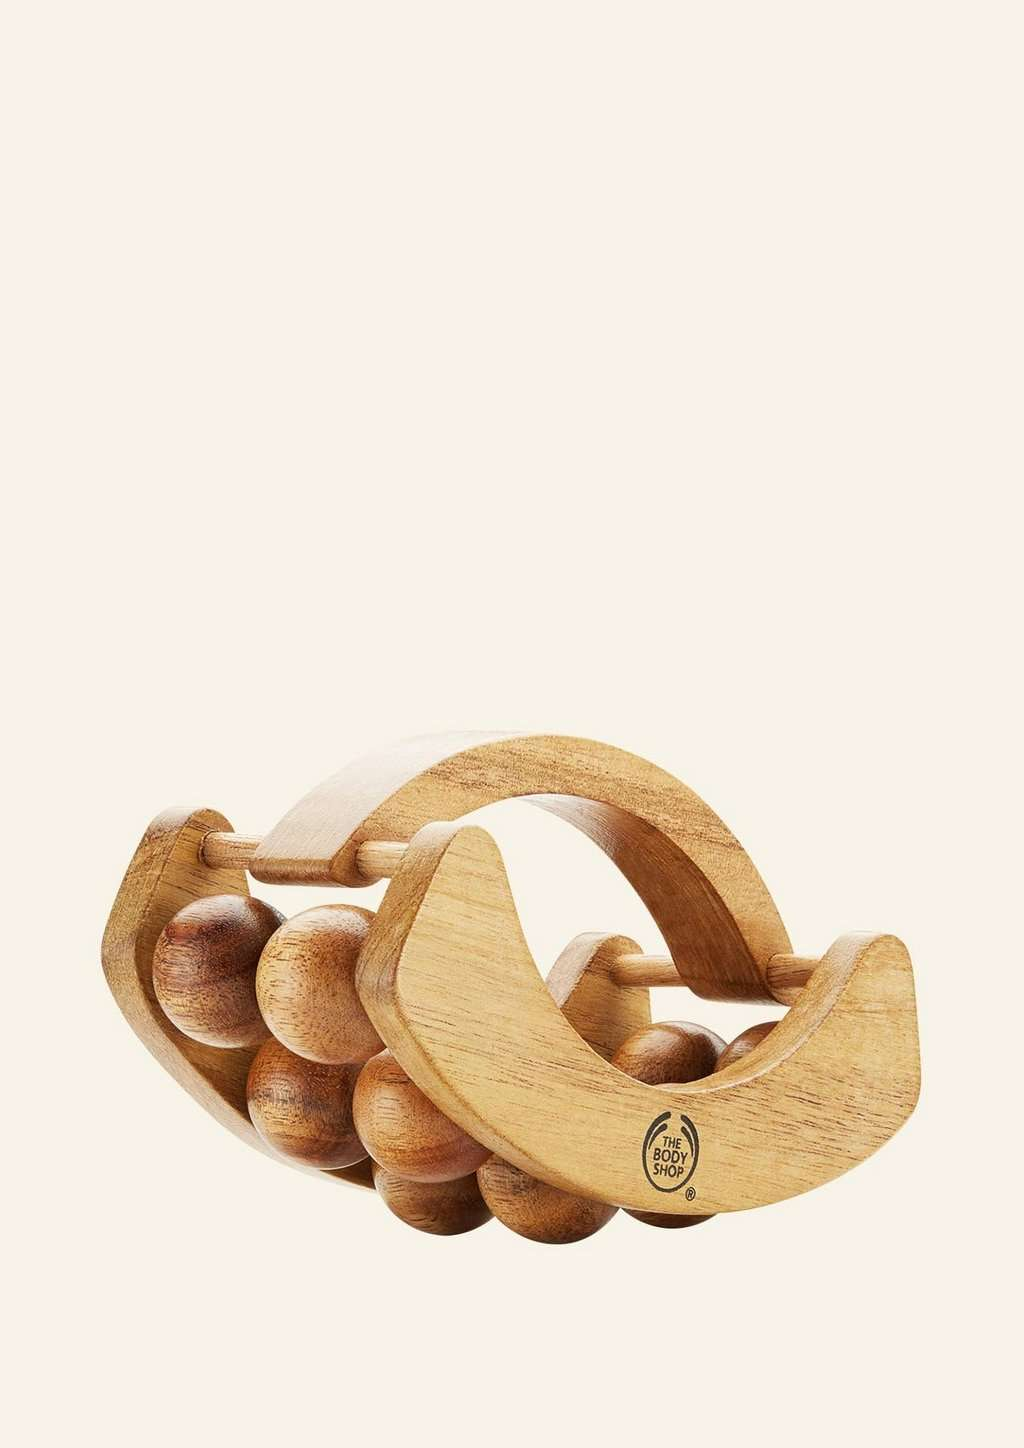 The Body Shop Wooden Massager